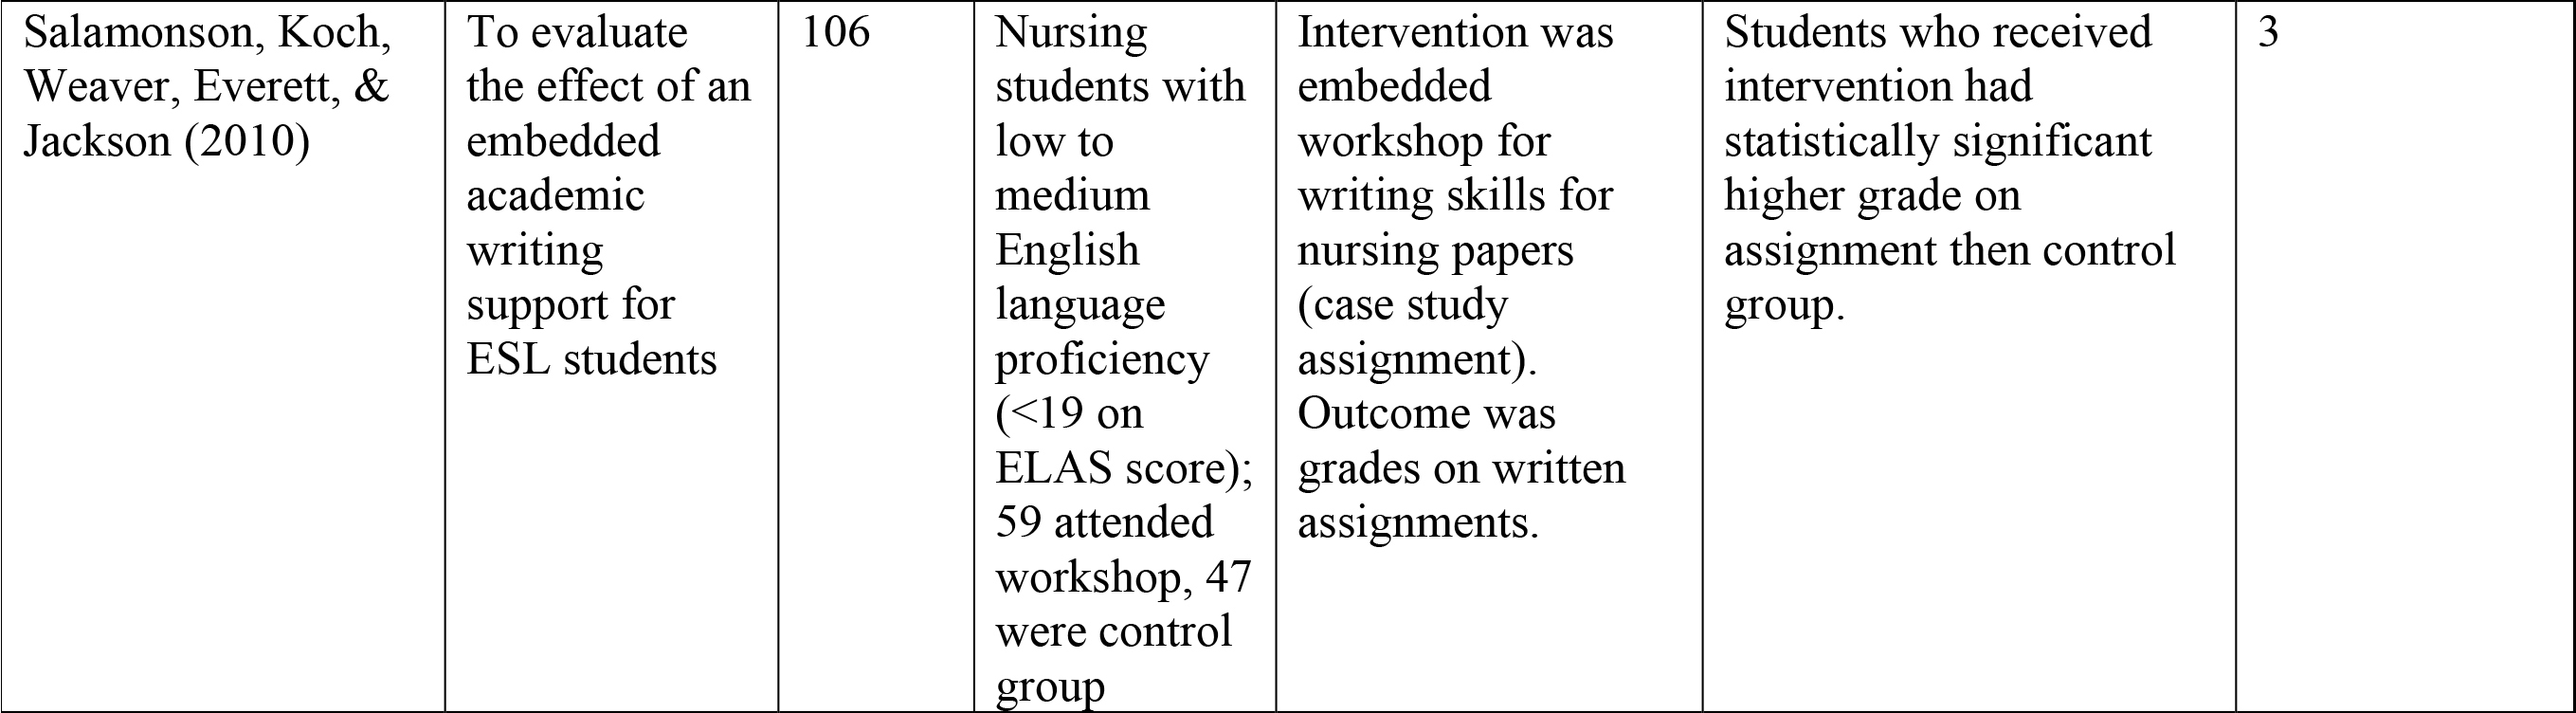 Summary of Articles Included in Literature Review